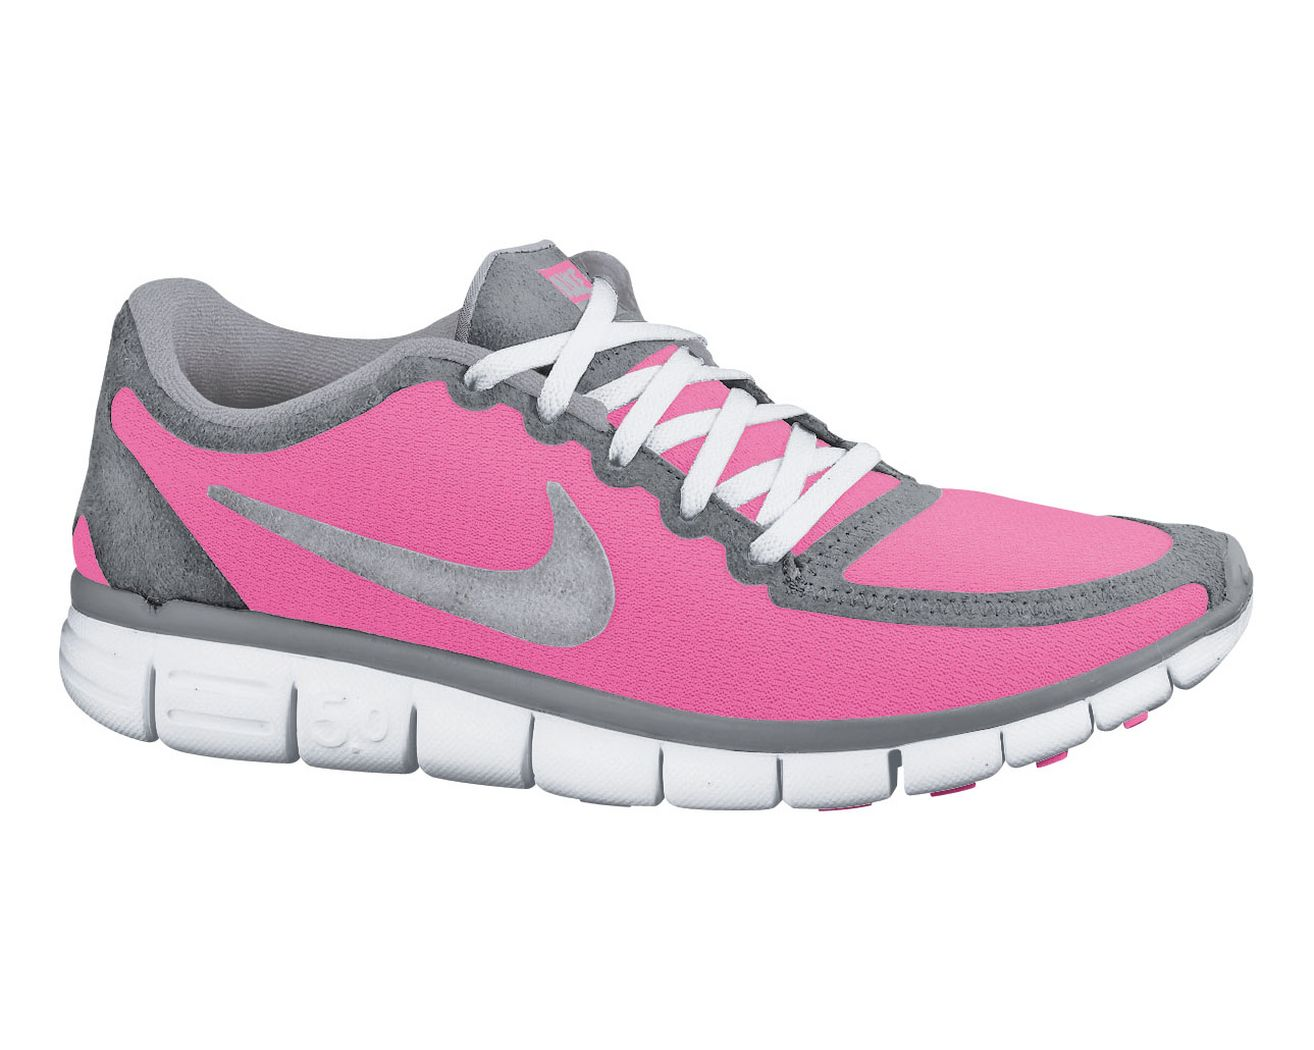 Women's Cross Country Shoes, Clothing & Gear. Cheap Nike